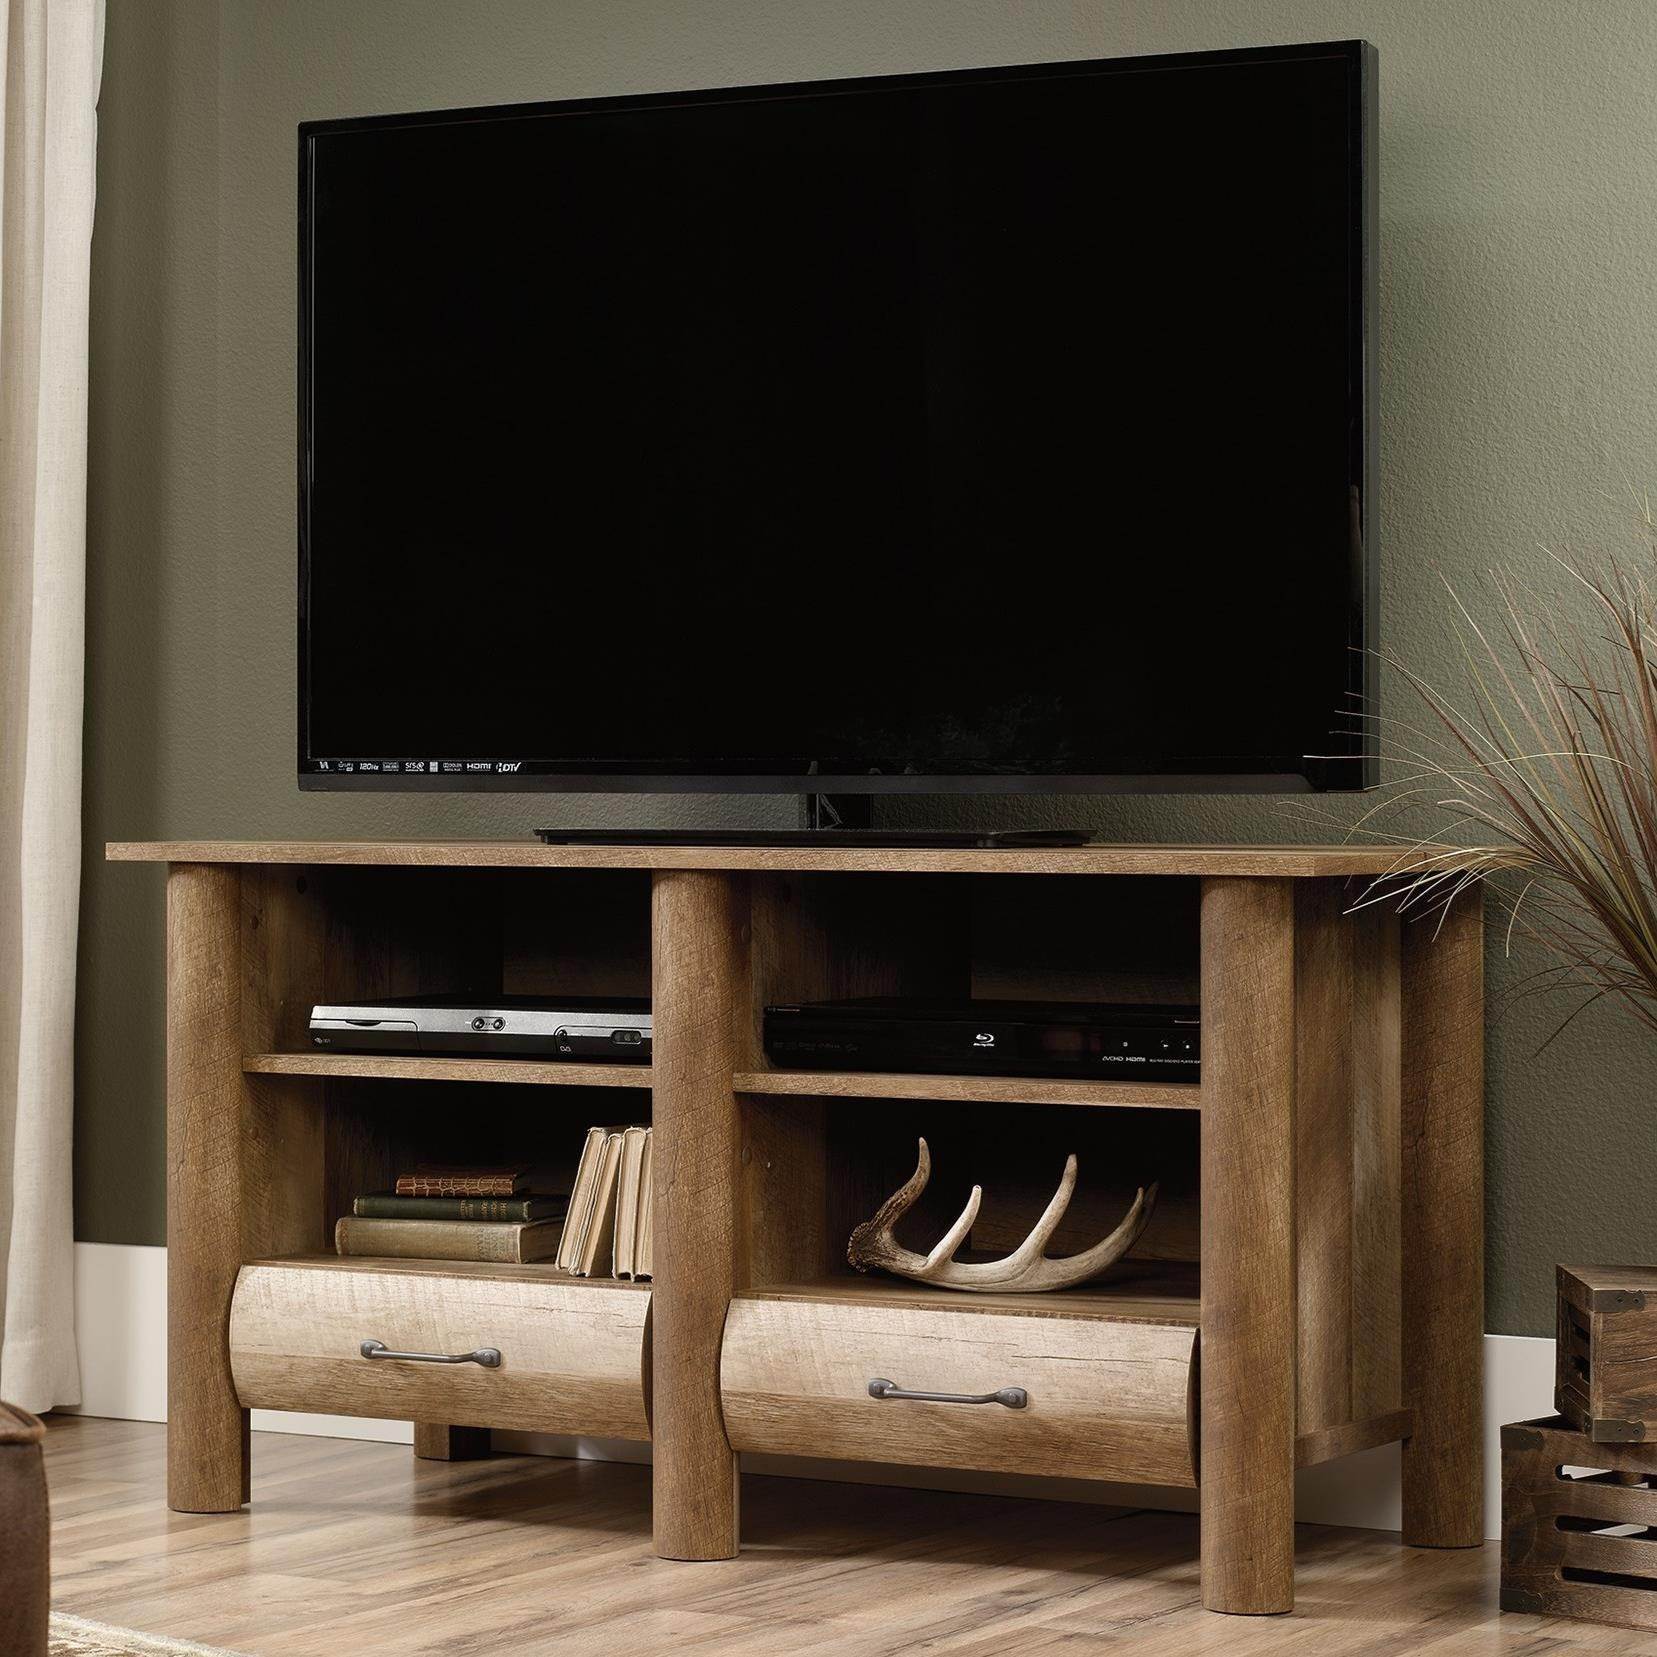 Log Furniture Tv Stand #36 - Sauder Boone MountainTV Stand ...